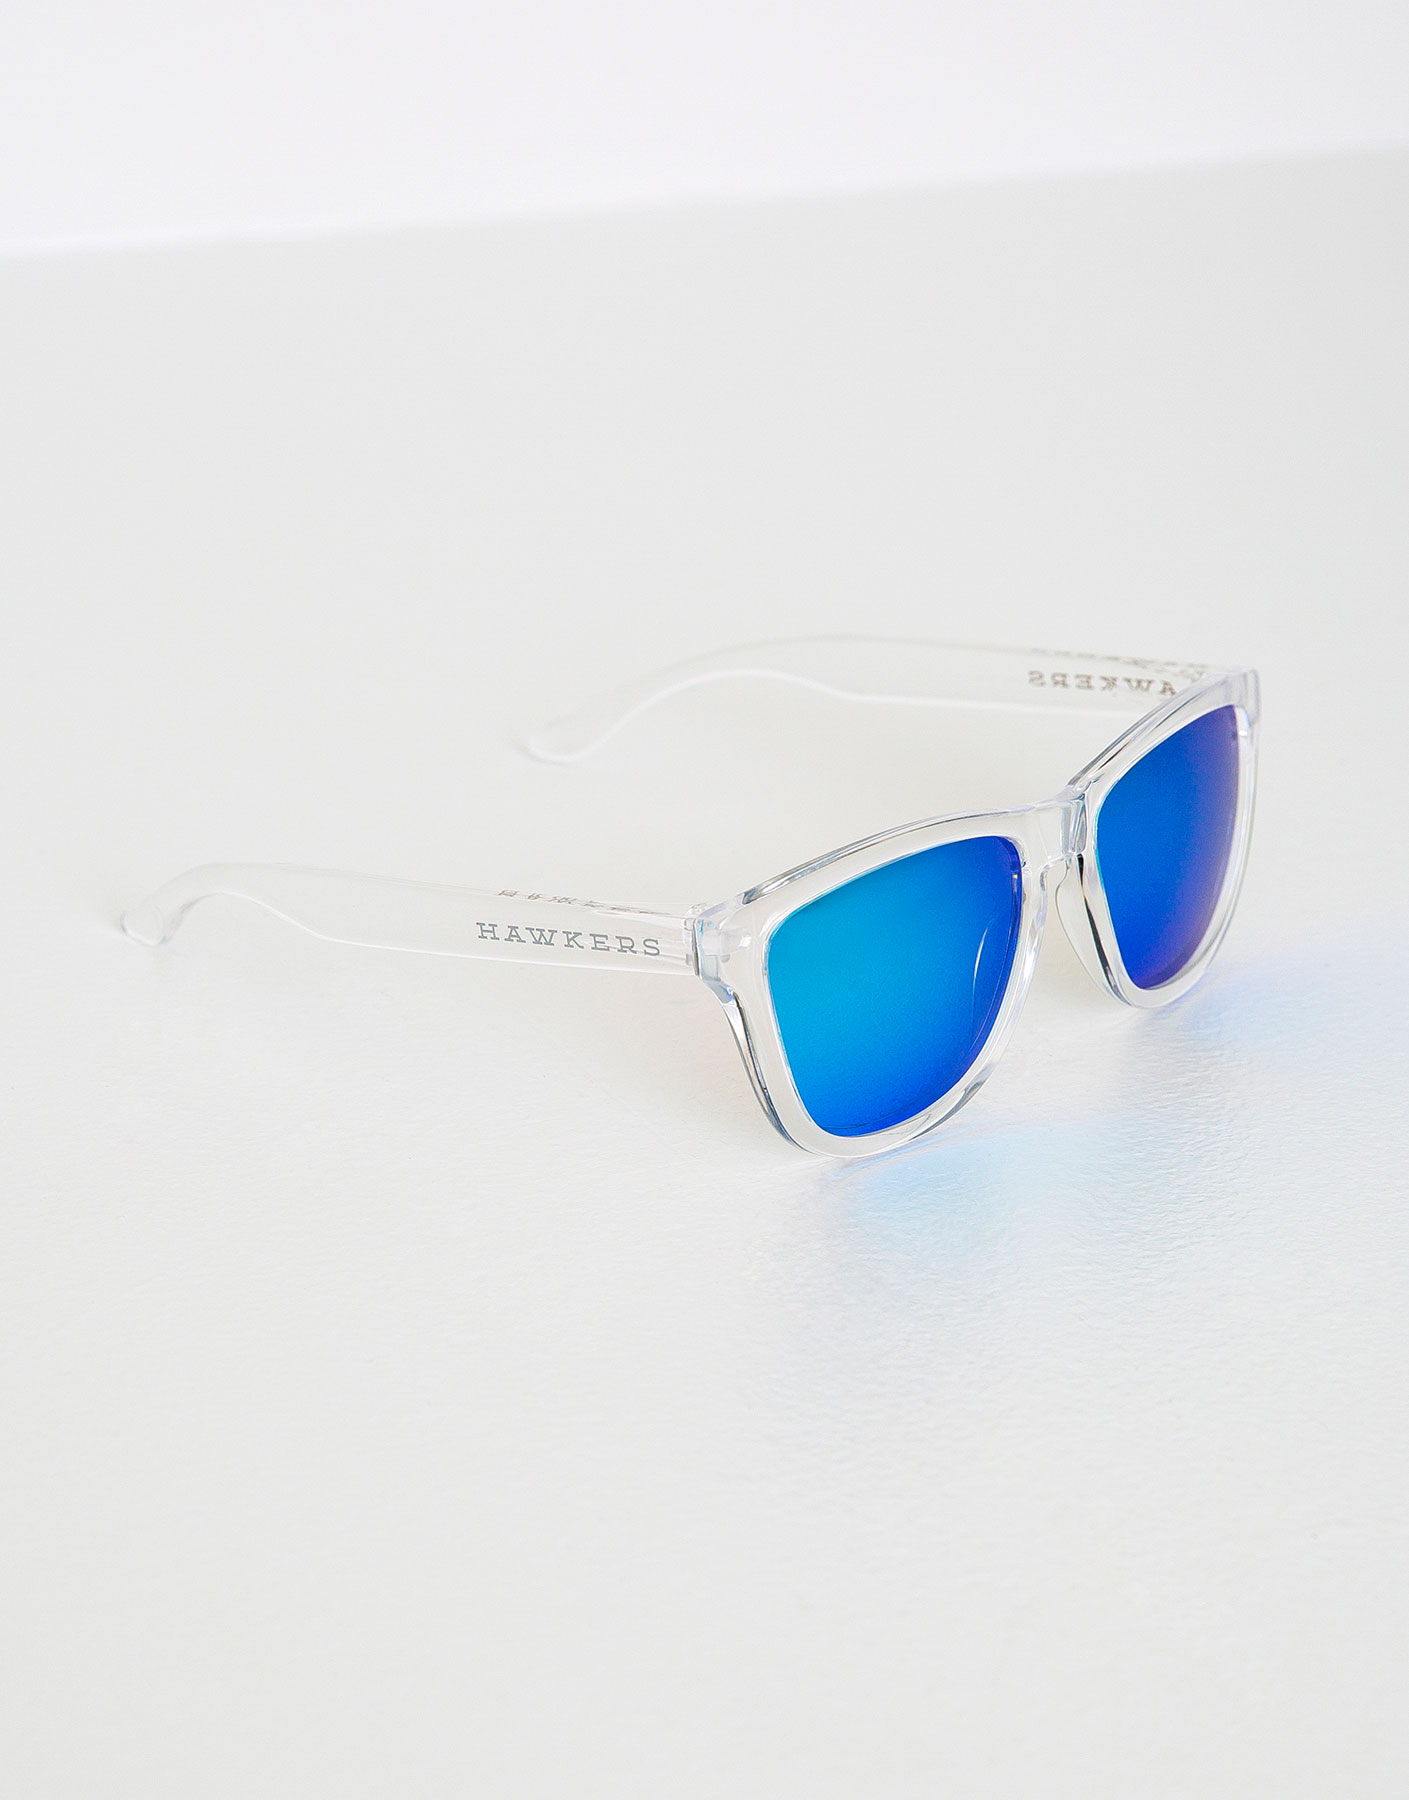 Ulleres de sol hawkers air clear blue one